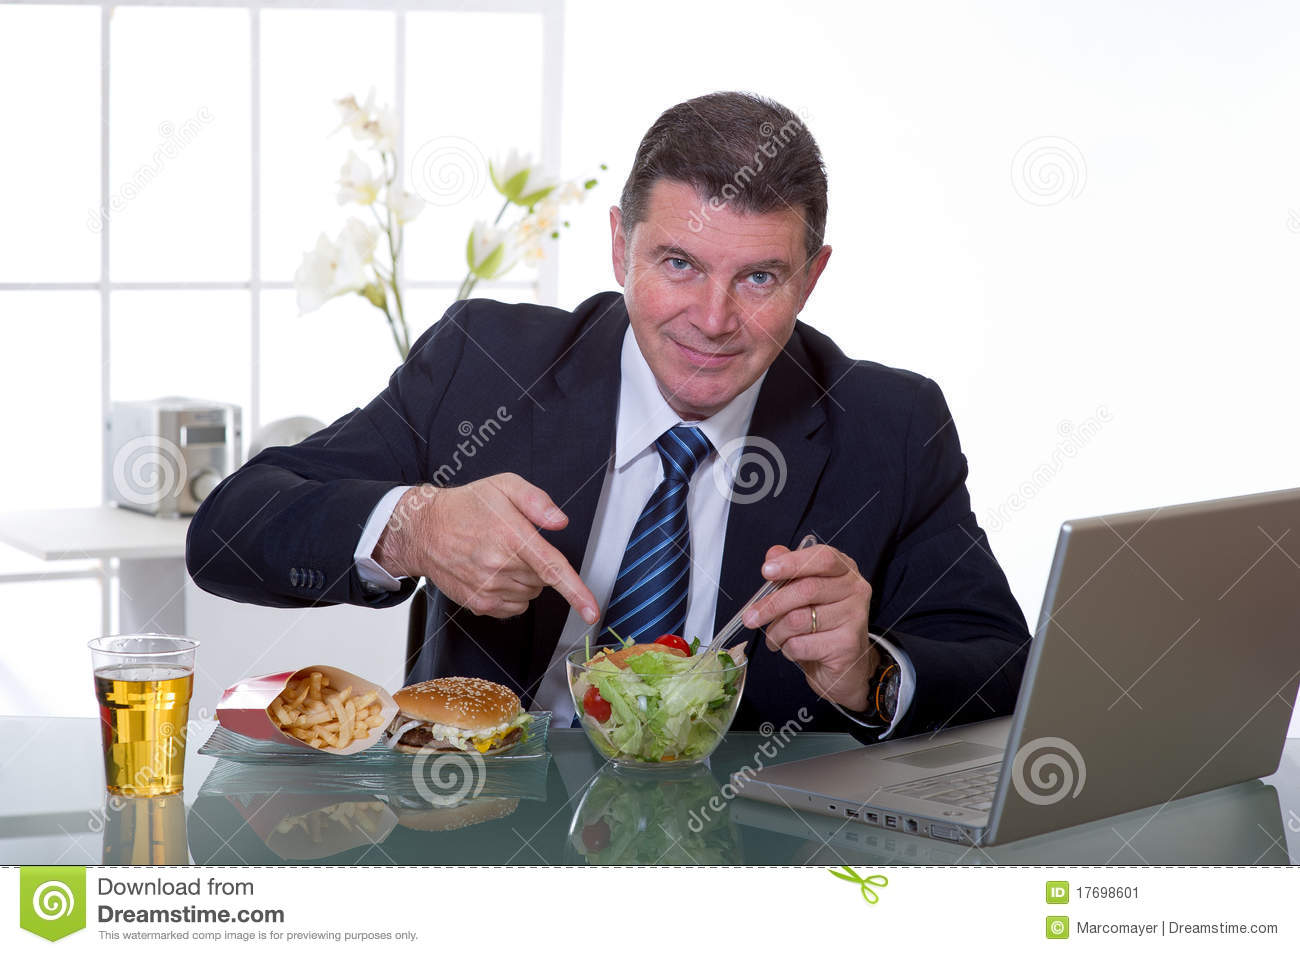 Manager at office eat green salad